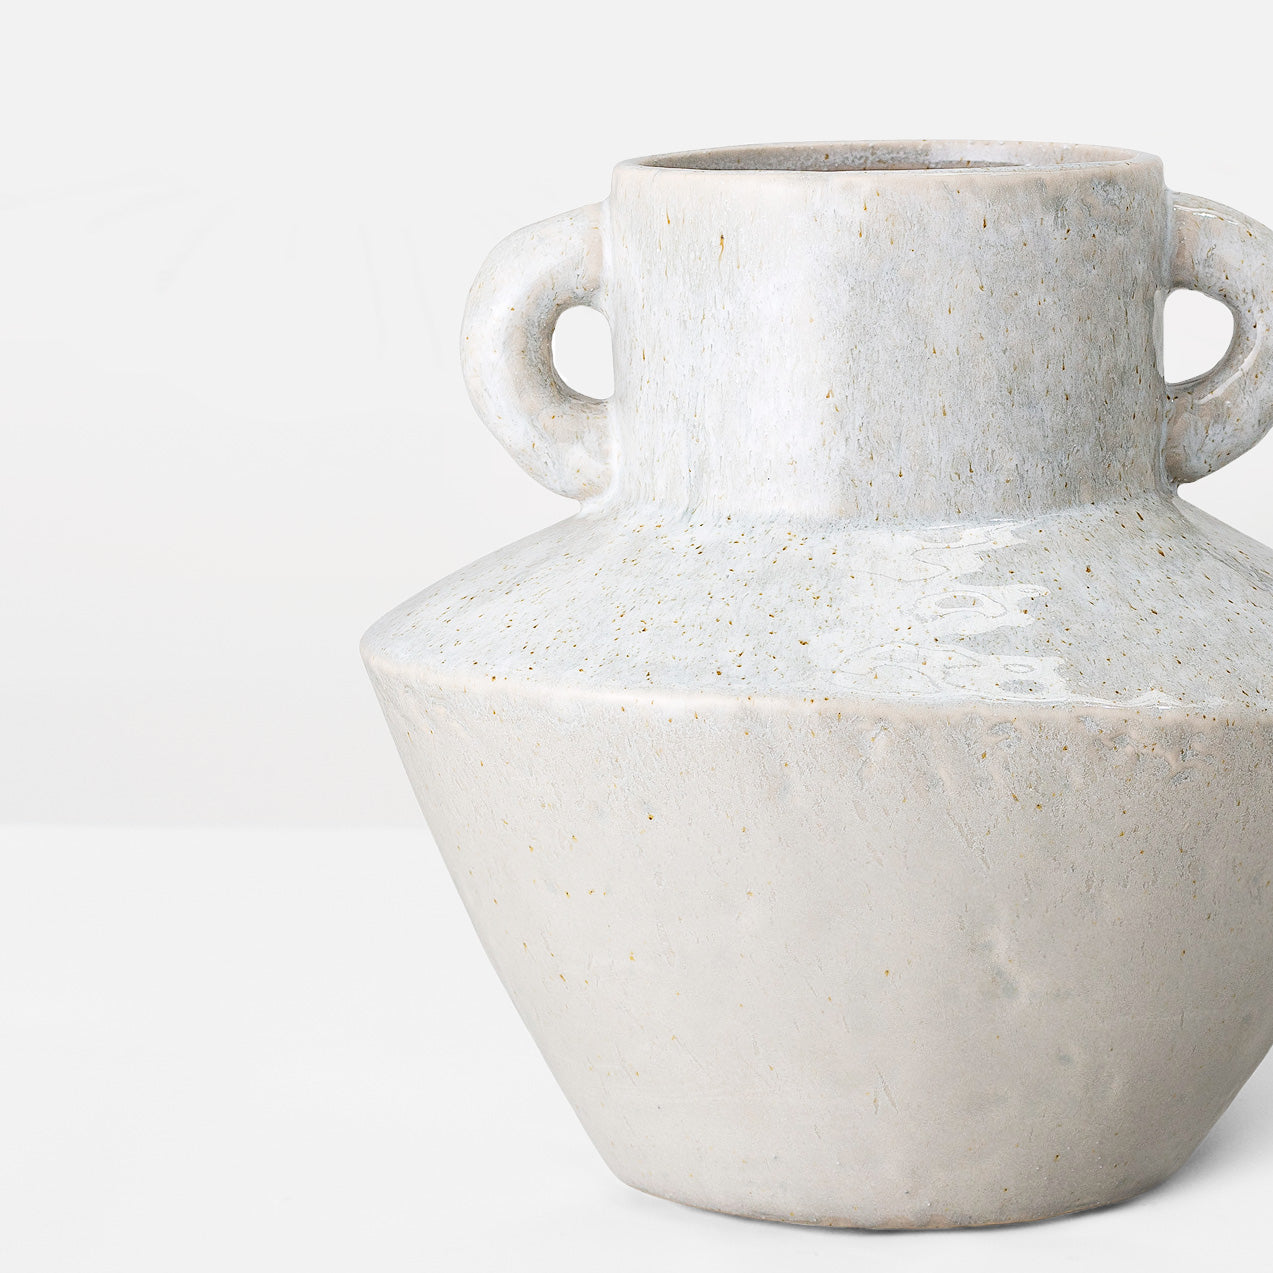 Handcrafted pale grey glazed stoneware vase